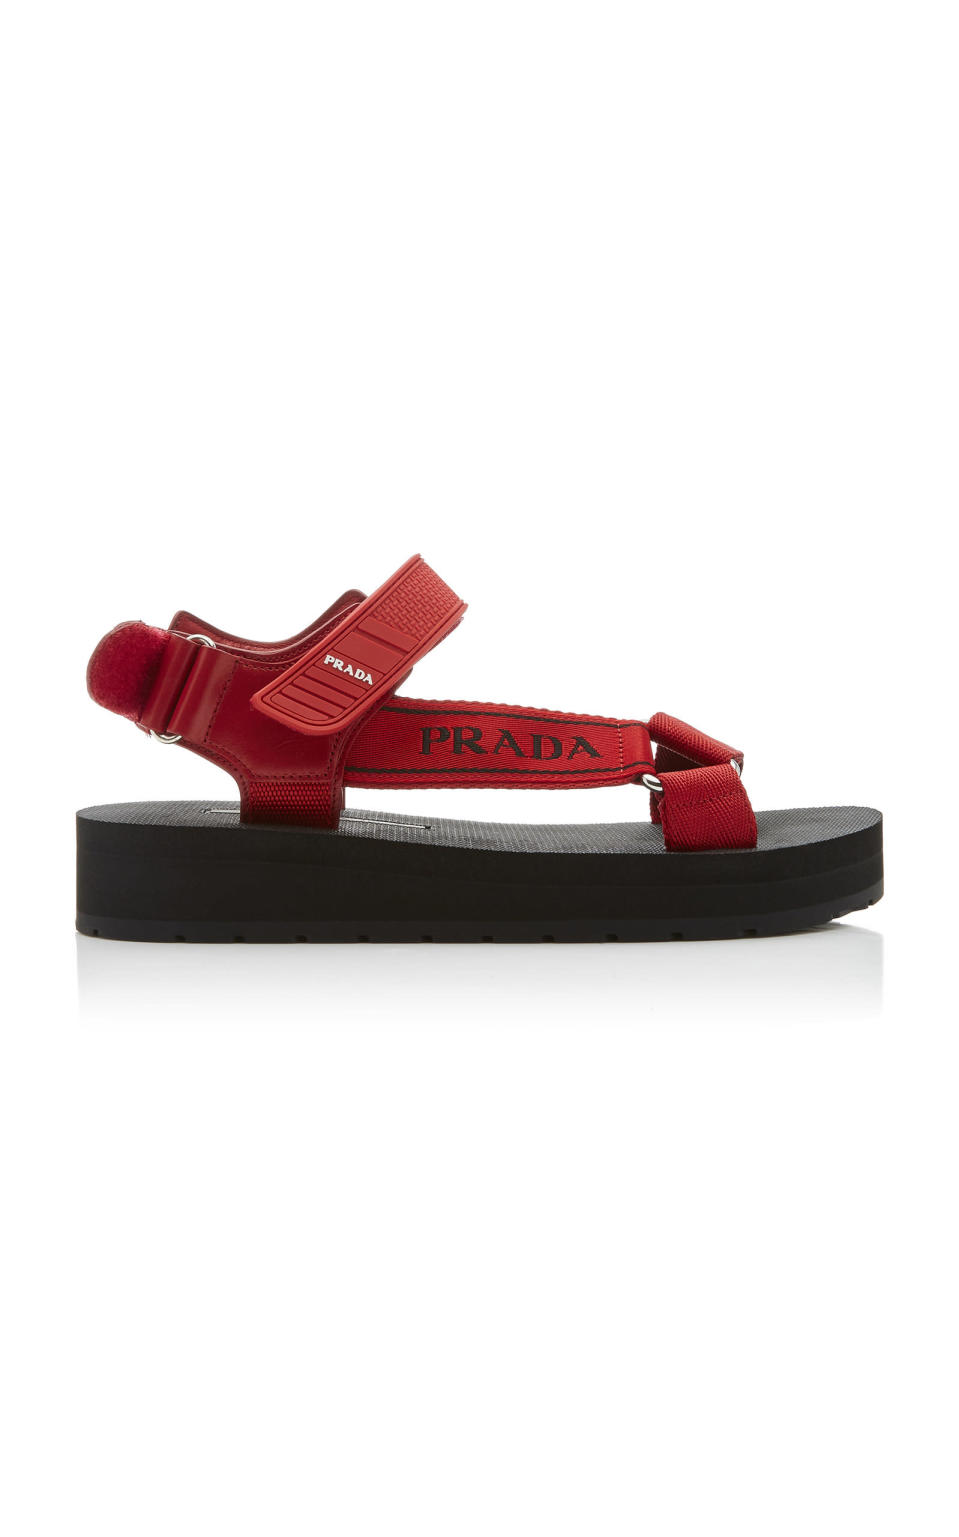 """<p><strong>Prada</strong></p><p>modaoperandi.com</p><p><strong>$590.00</strong></p><p><a href=""""https://go.redirectingat.com?id=74968X1596630&url=https%3A%2F%2Fwww.modaoperandi.com%2Fprada-r20%2Fcanvas-jacquard-and-rubber-sandals&sref=https%3A%2F%2Fwww.harpersbazaar.com%2Ffashion%2Ftrends%2Fg31749966%2Fsummer-2020-shoe-trends%2F"""" rel=""""nofollow noopener"""" target=""""_blank"""" data-ylk=""""slk:Shop Now"""" class=""""link rapid-noclick-resp"""">Shop Now</a></p>Hook and loop fastening Composition: jacquard, rubber Made in Italy"""